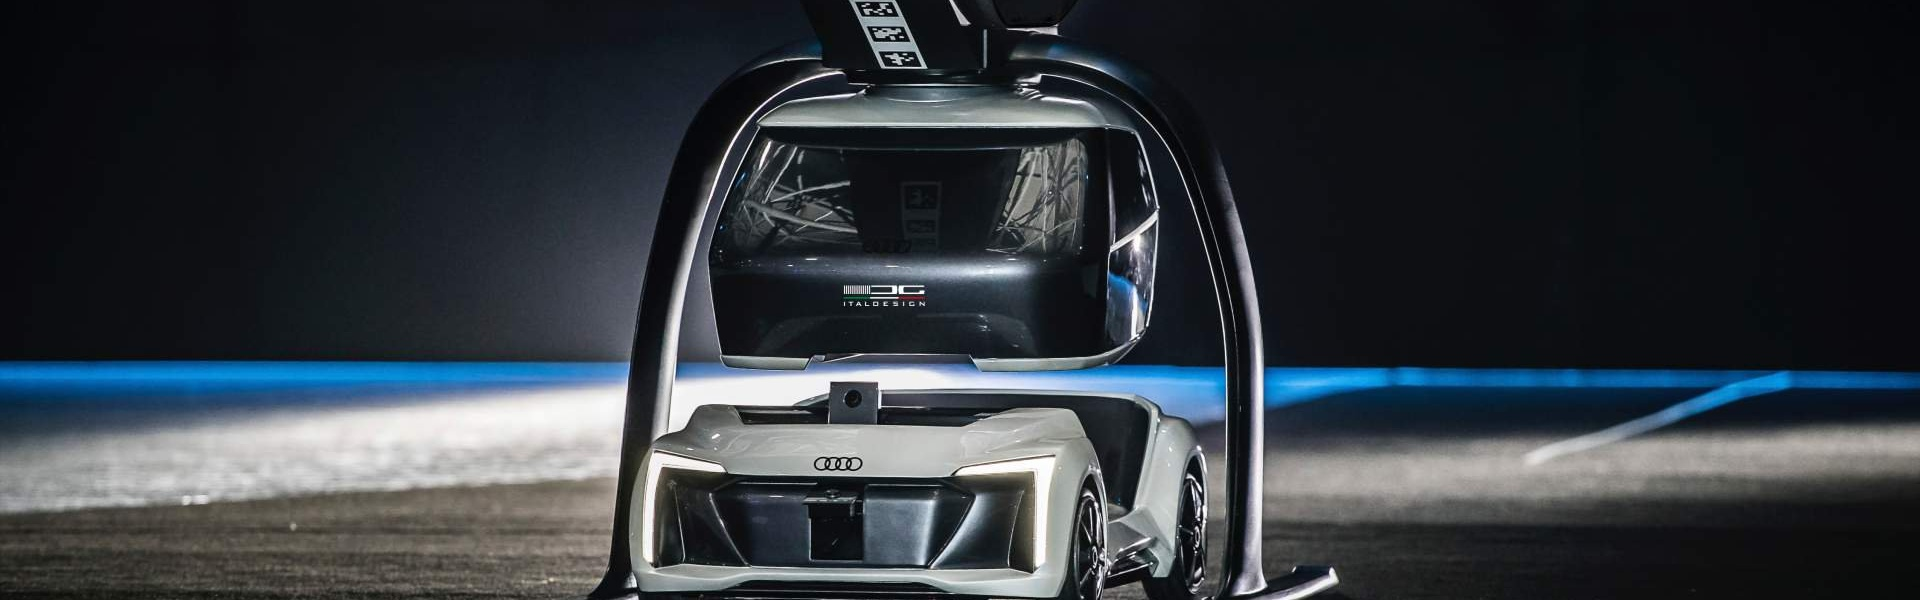 audi-pop.up-next-flying-taxi-5.jpg